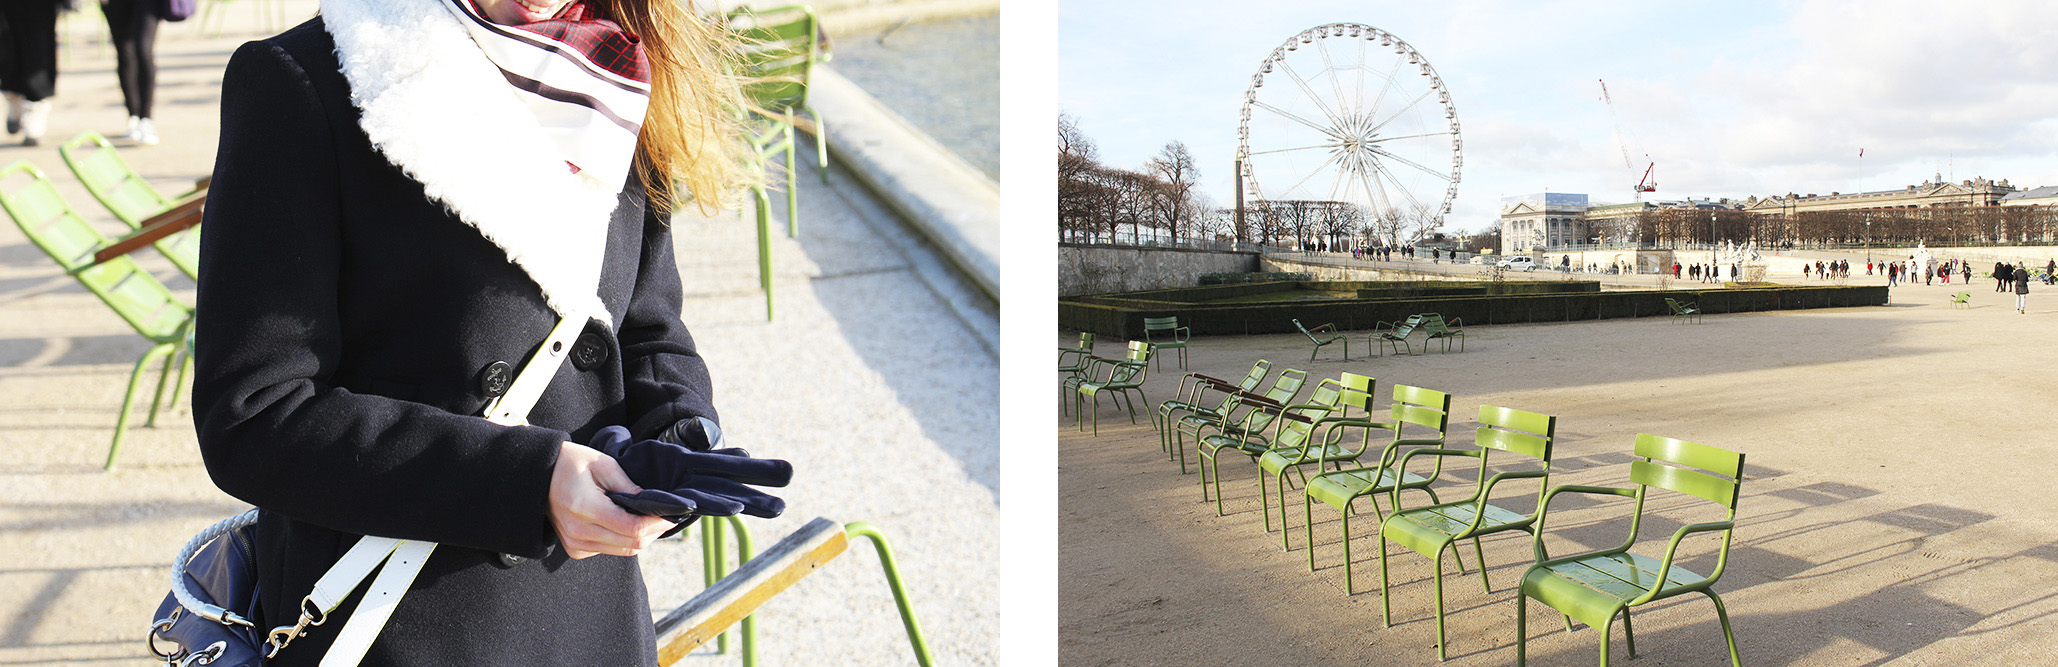 Tuileries winter 9